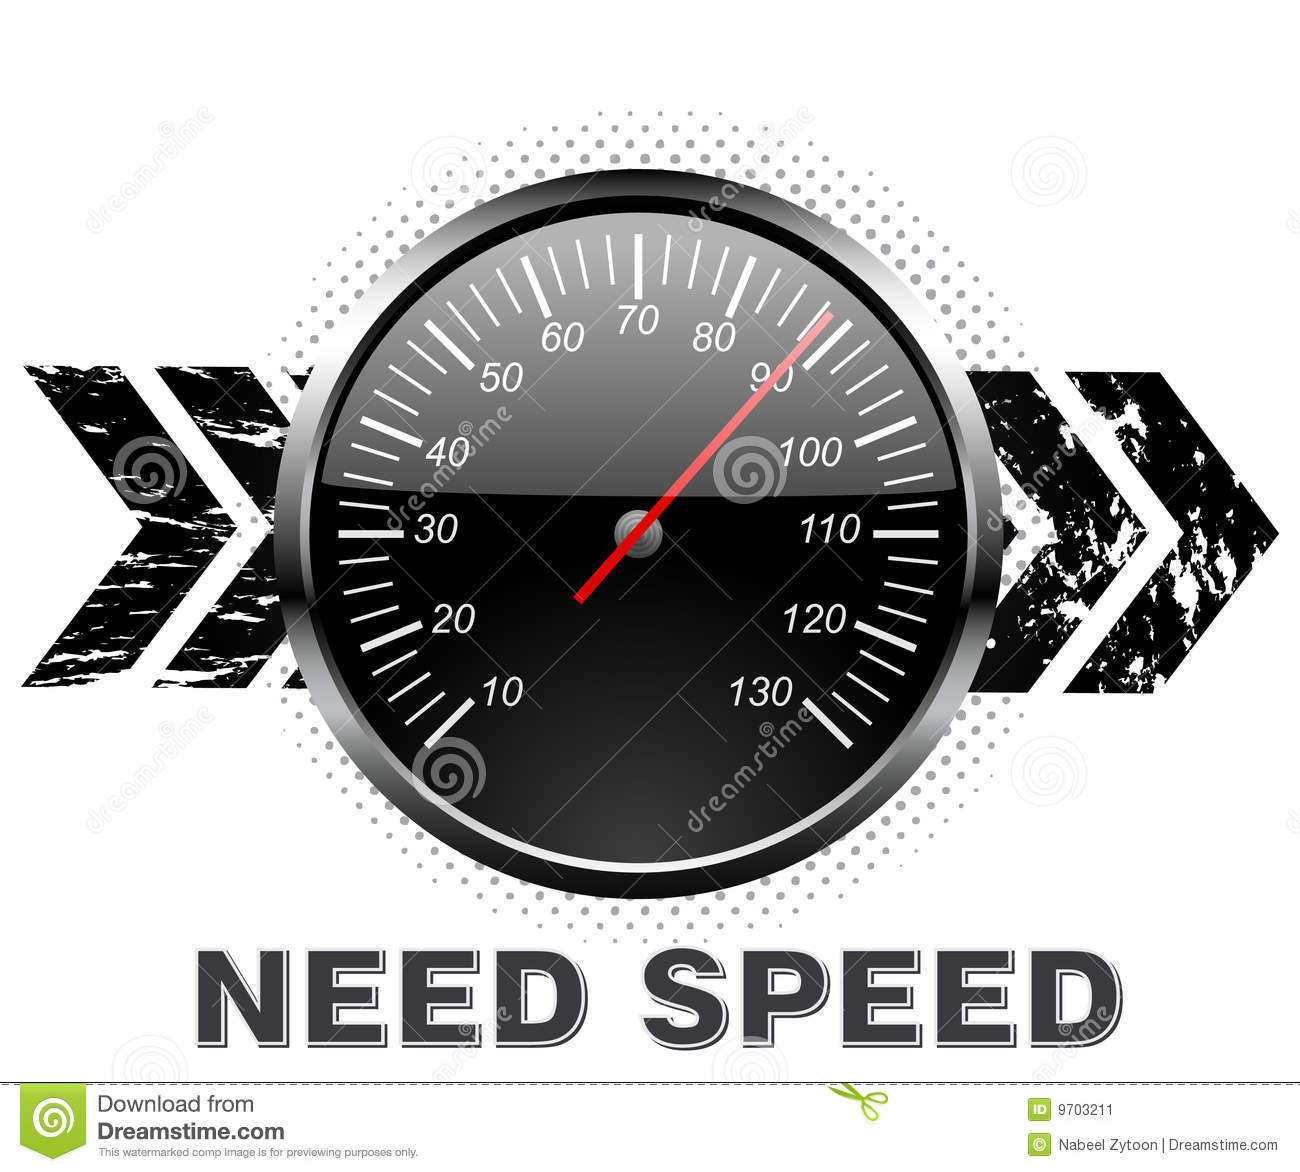 Need for speed clipart image freeuse stock Need for speed clipart - ClipartFest image freeuse stock